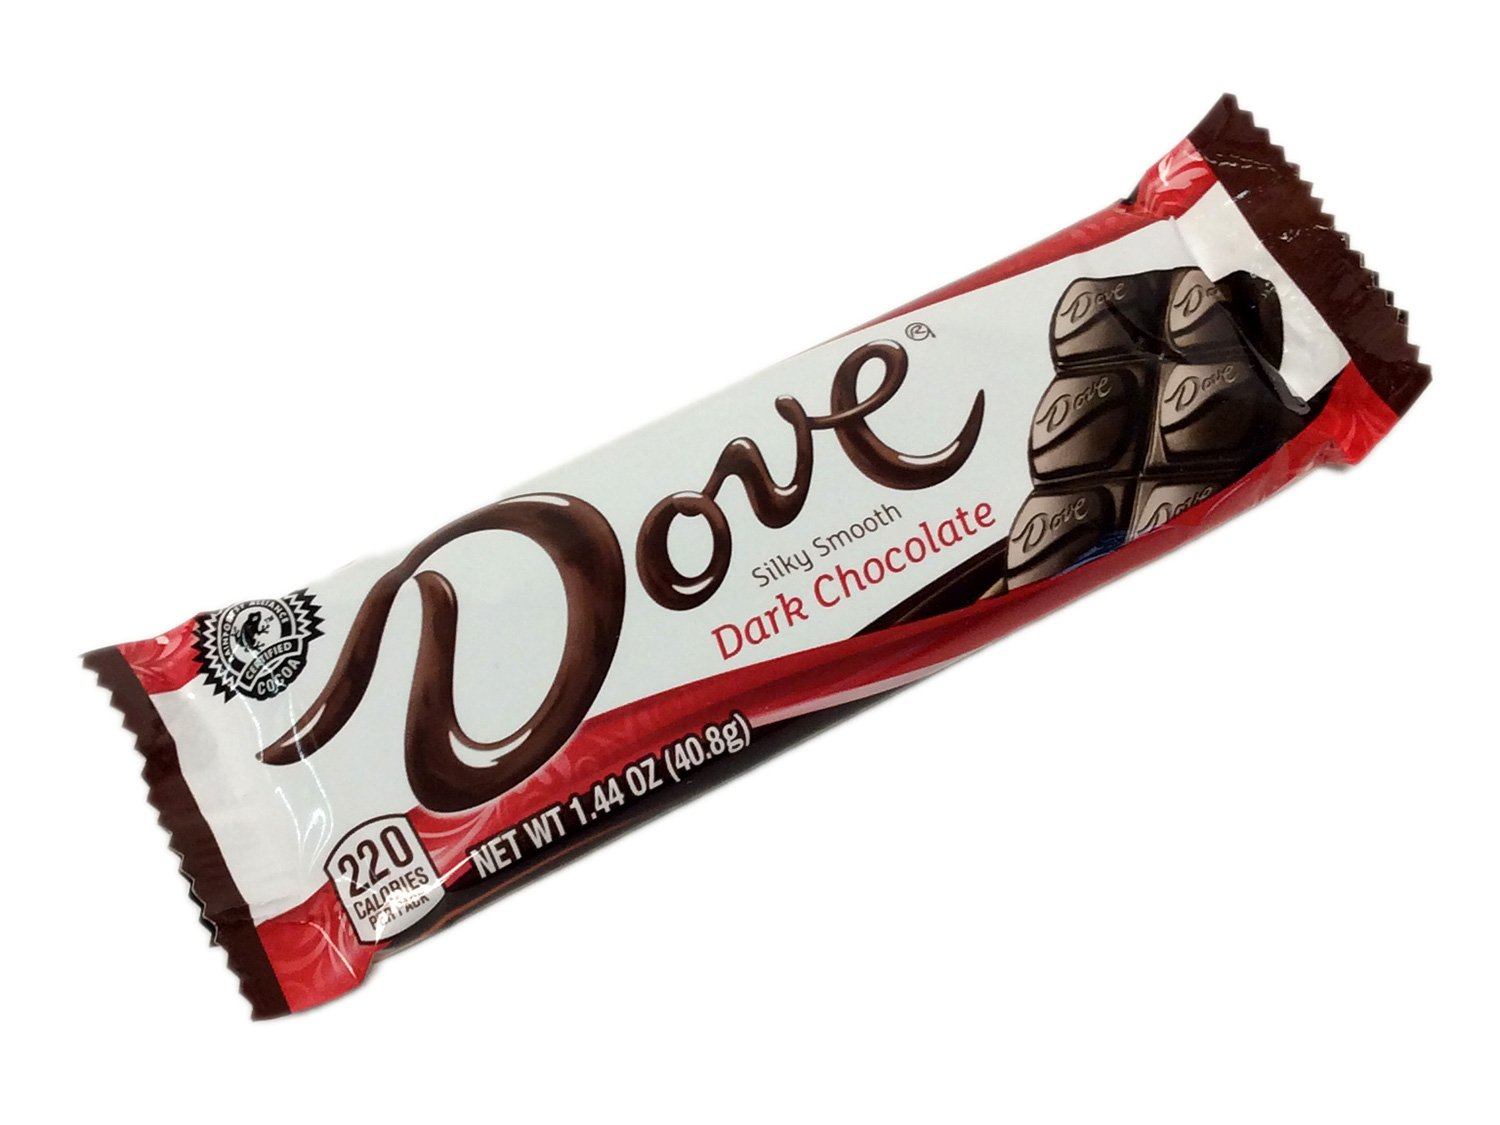 Dove Dark Chocolate 1.44 oz bar